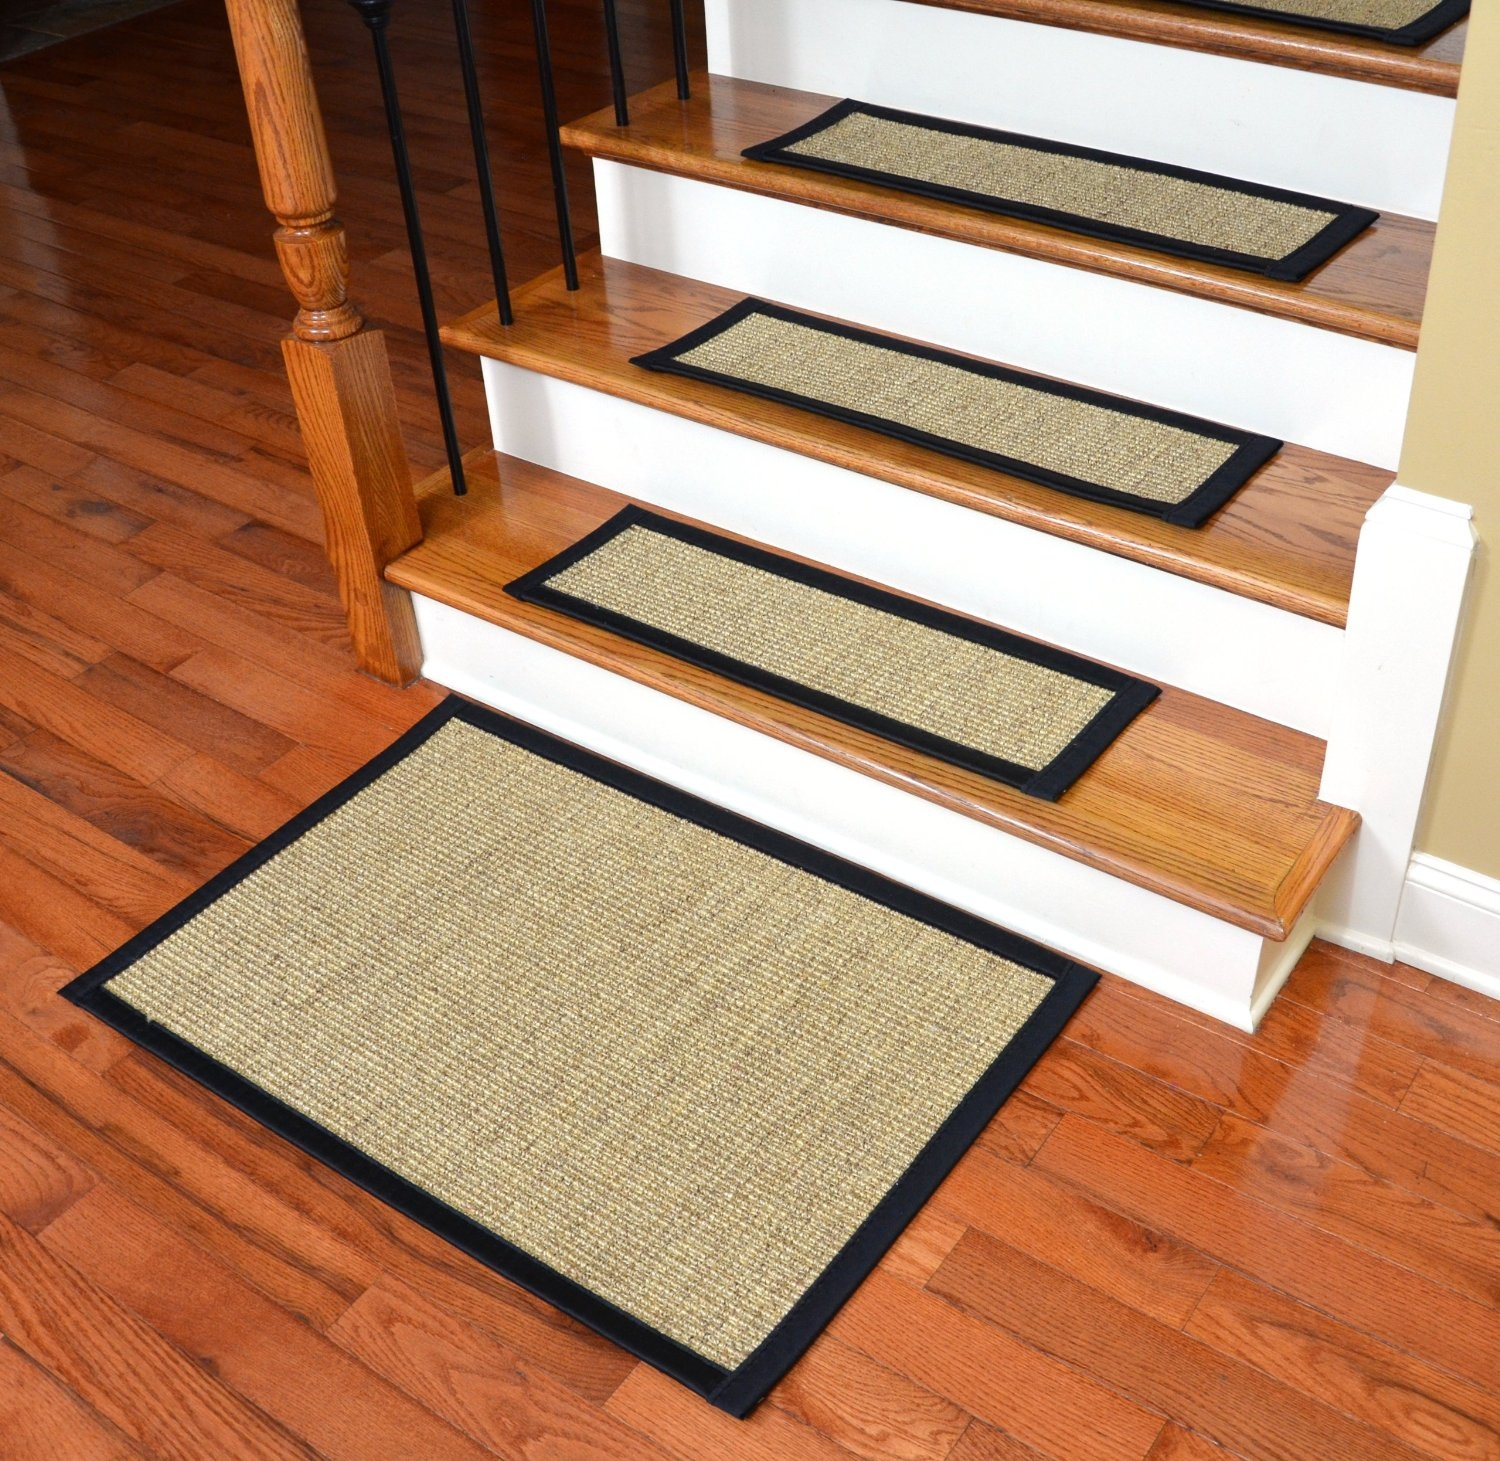 Decor Non Slip Stair Treads With Brick Wall Also Concrete Inside Non Skid Stair Tread Rugs (Image 4 of 15)